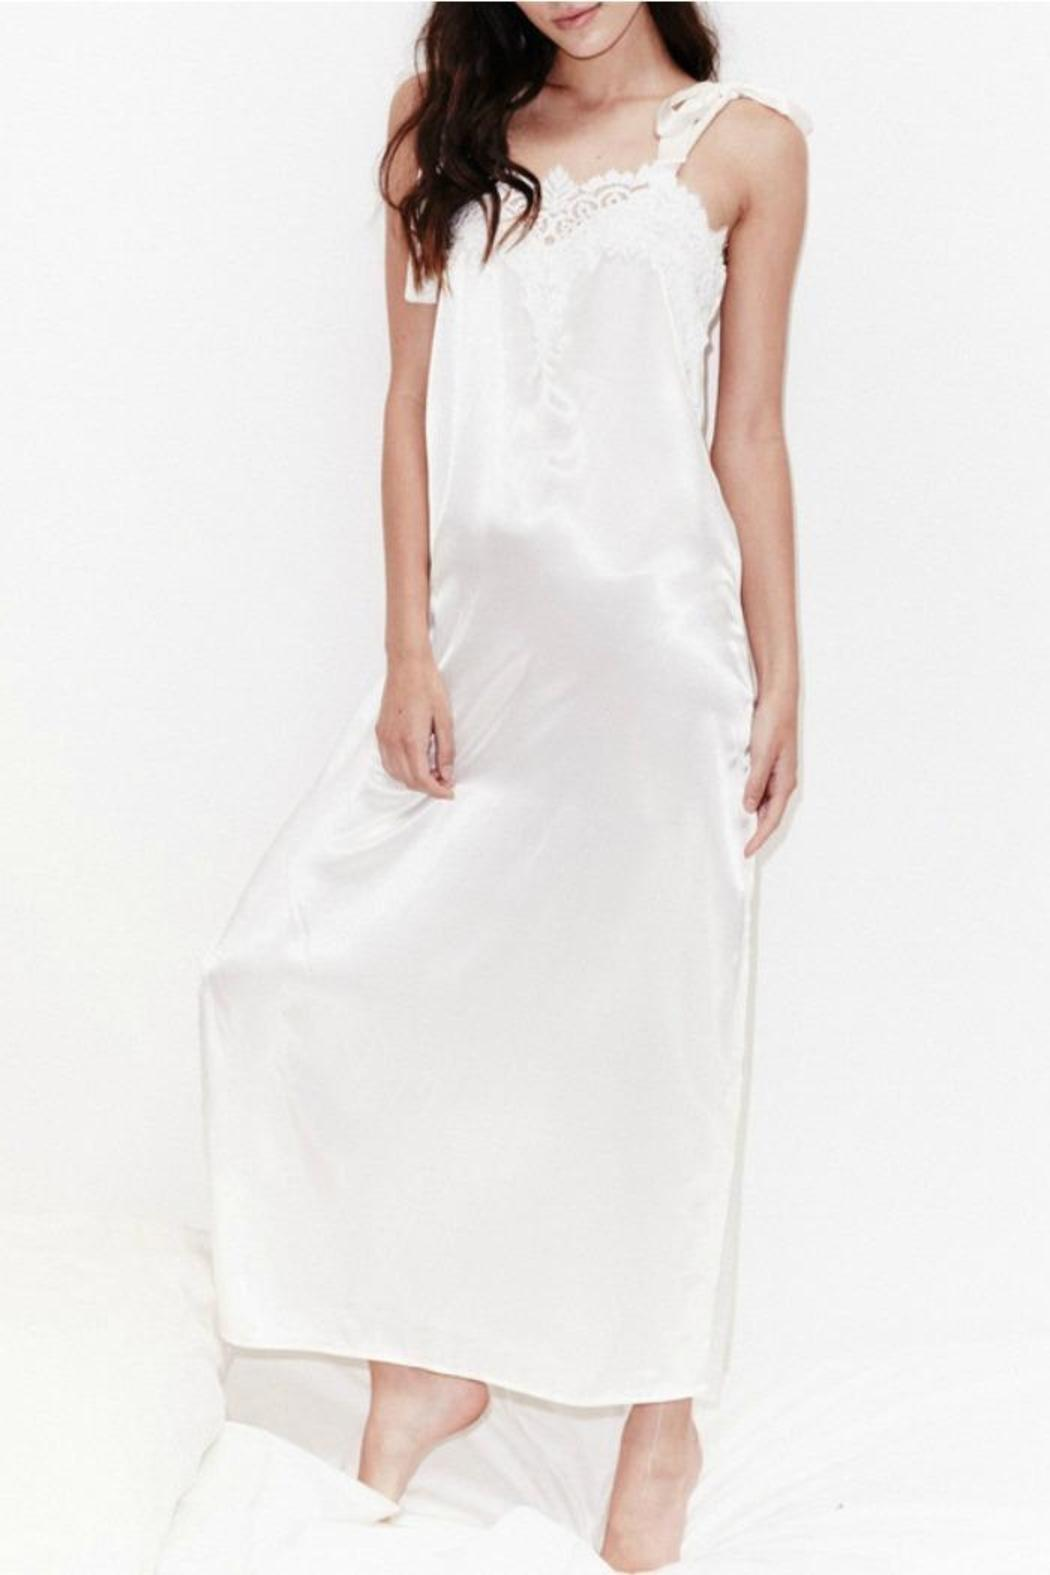 FOR LOVE & LEMONS Nighty Night Gown from Texas by Chalet Boutique ...